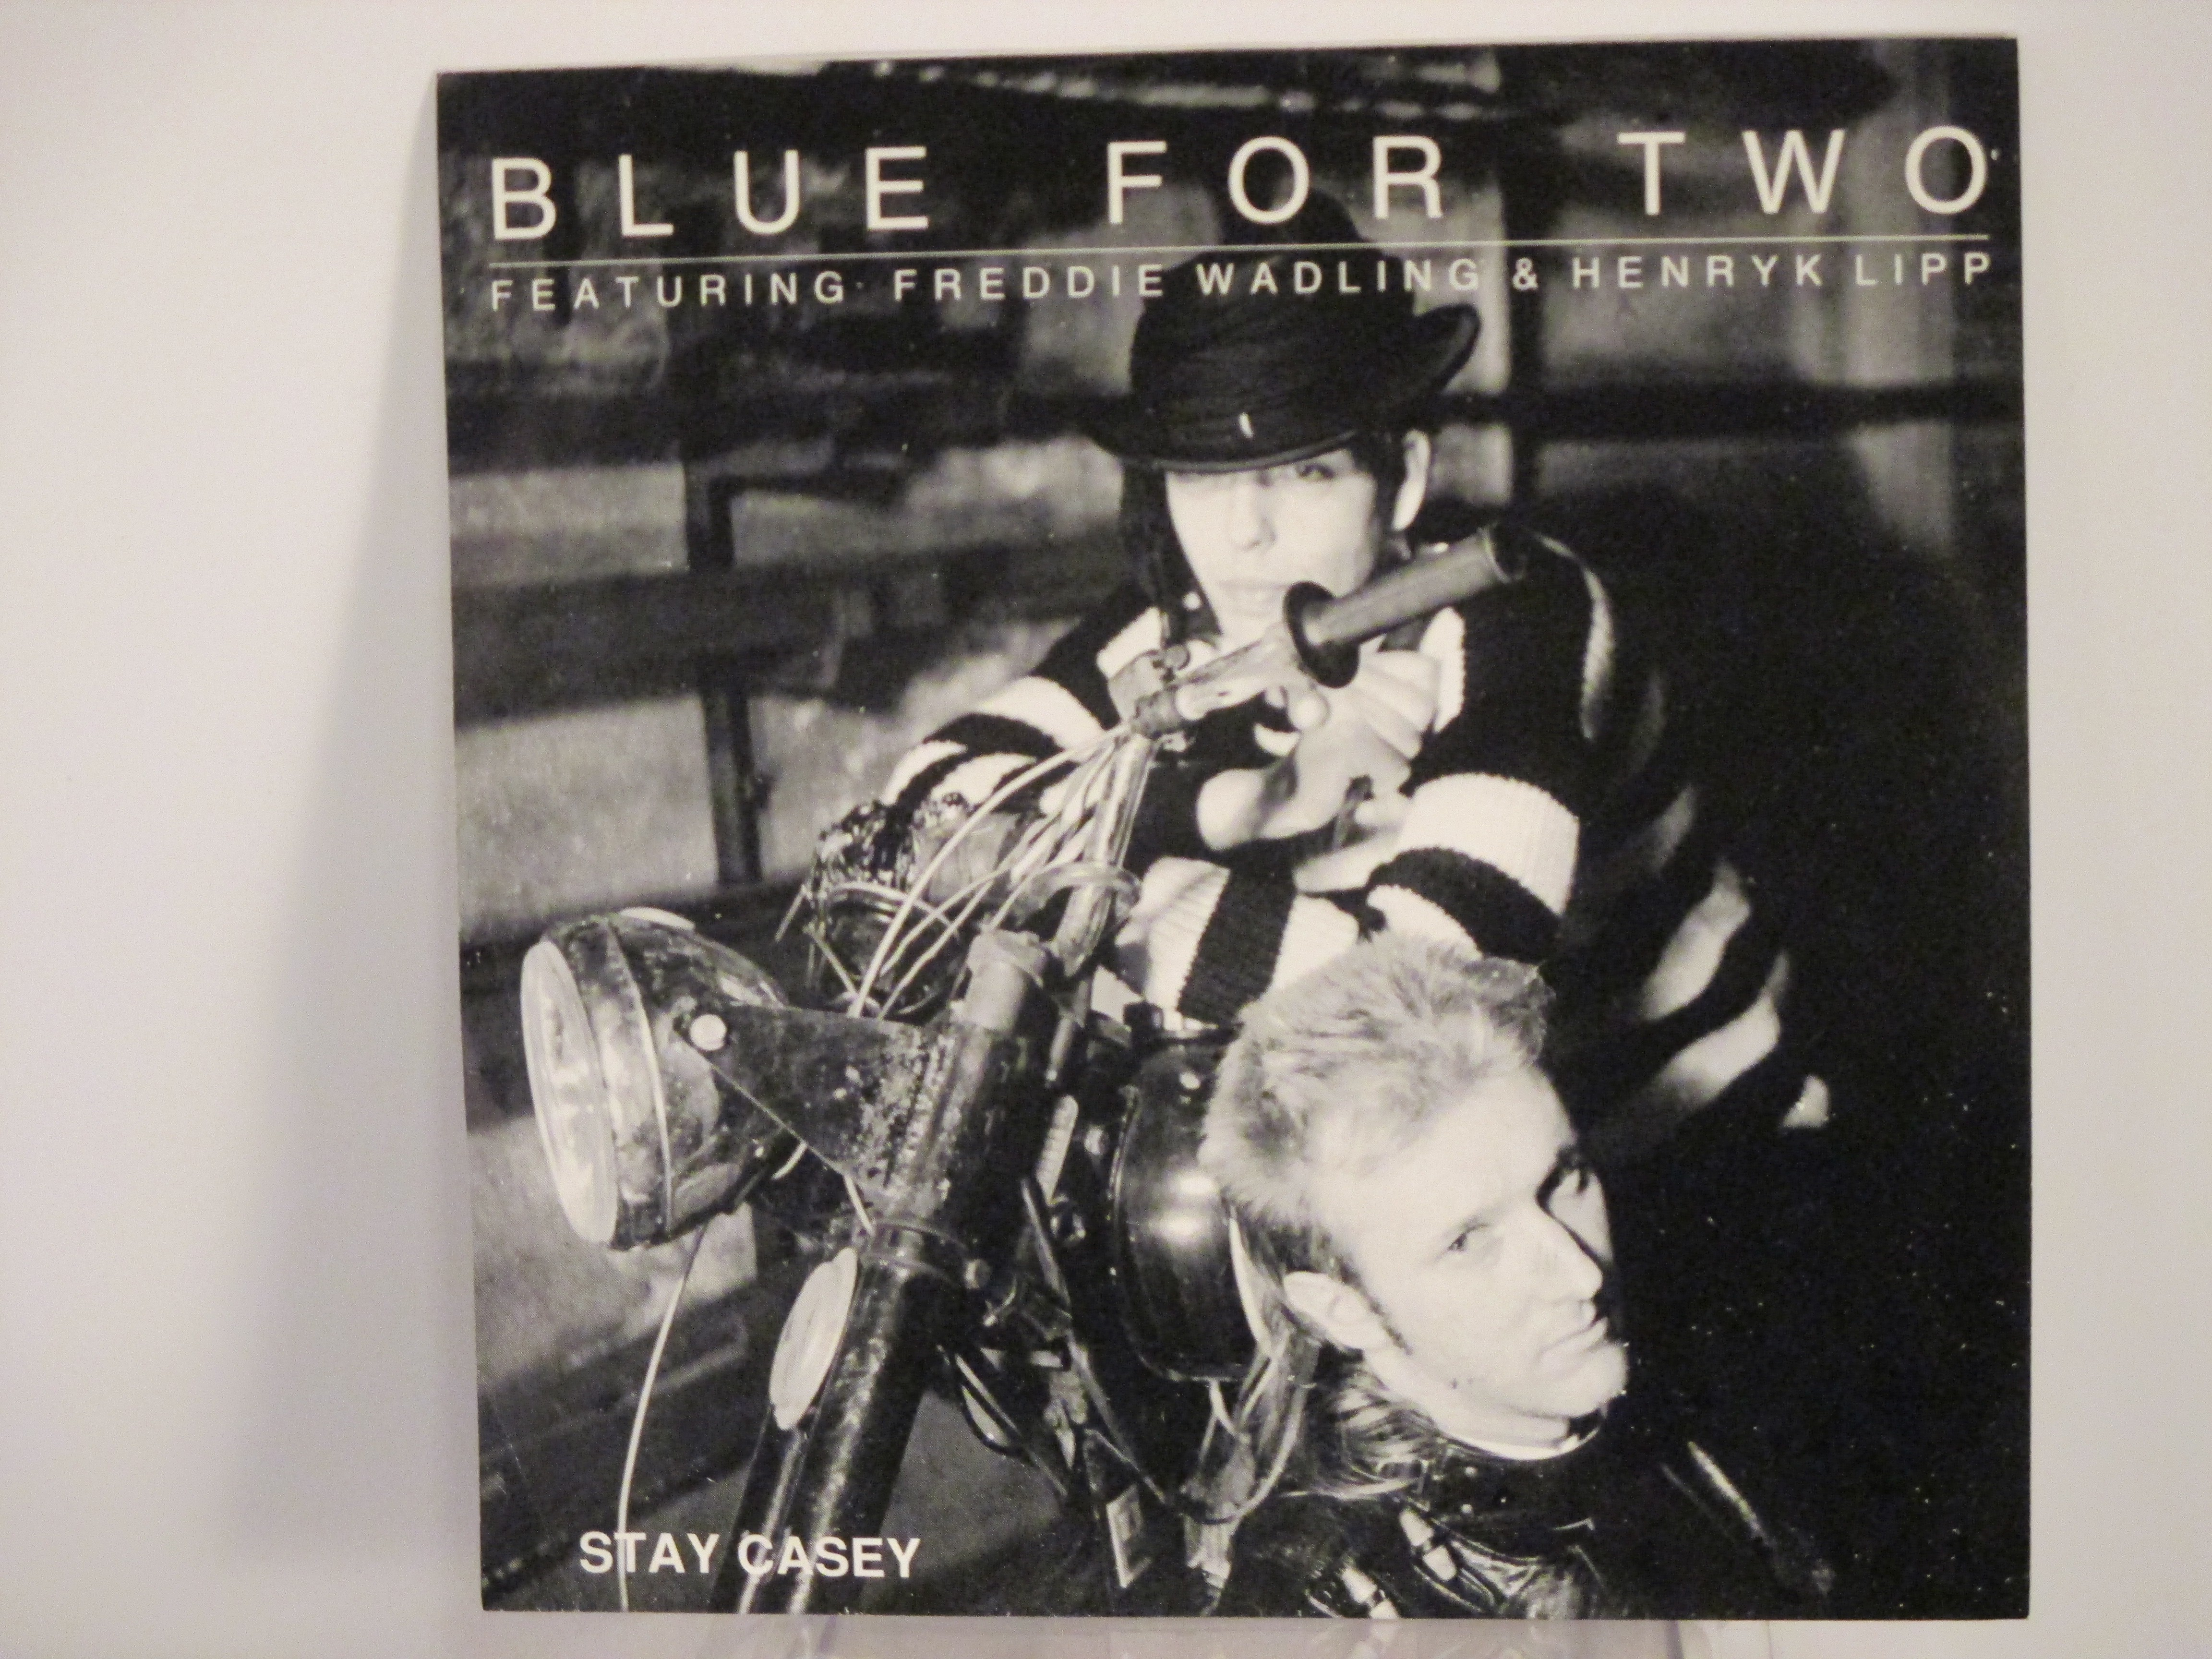 BLUE FOR TWO : Stay Casey / Manson moon